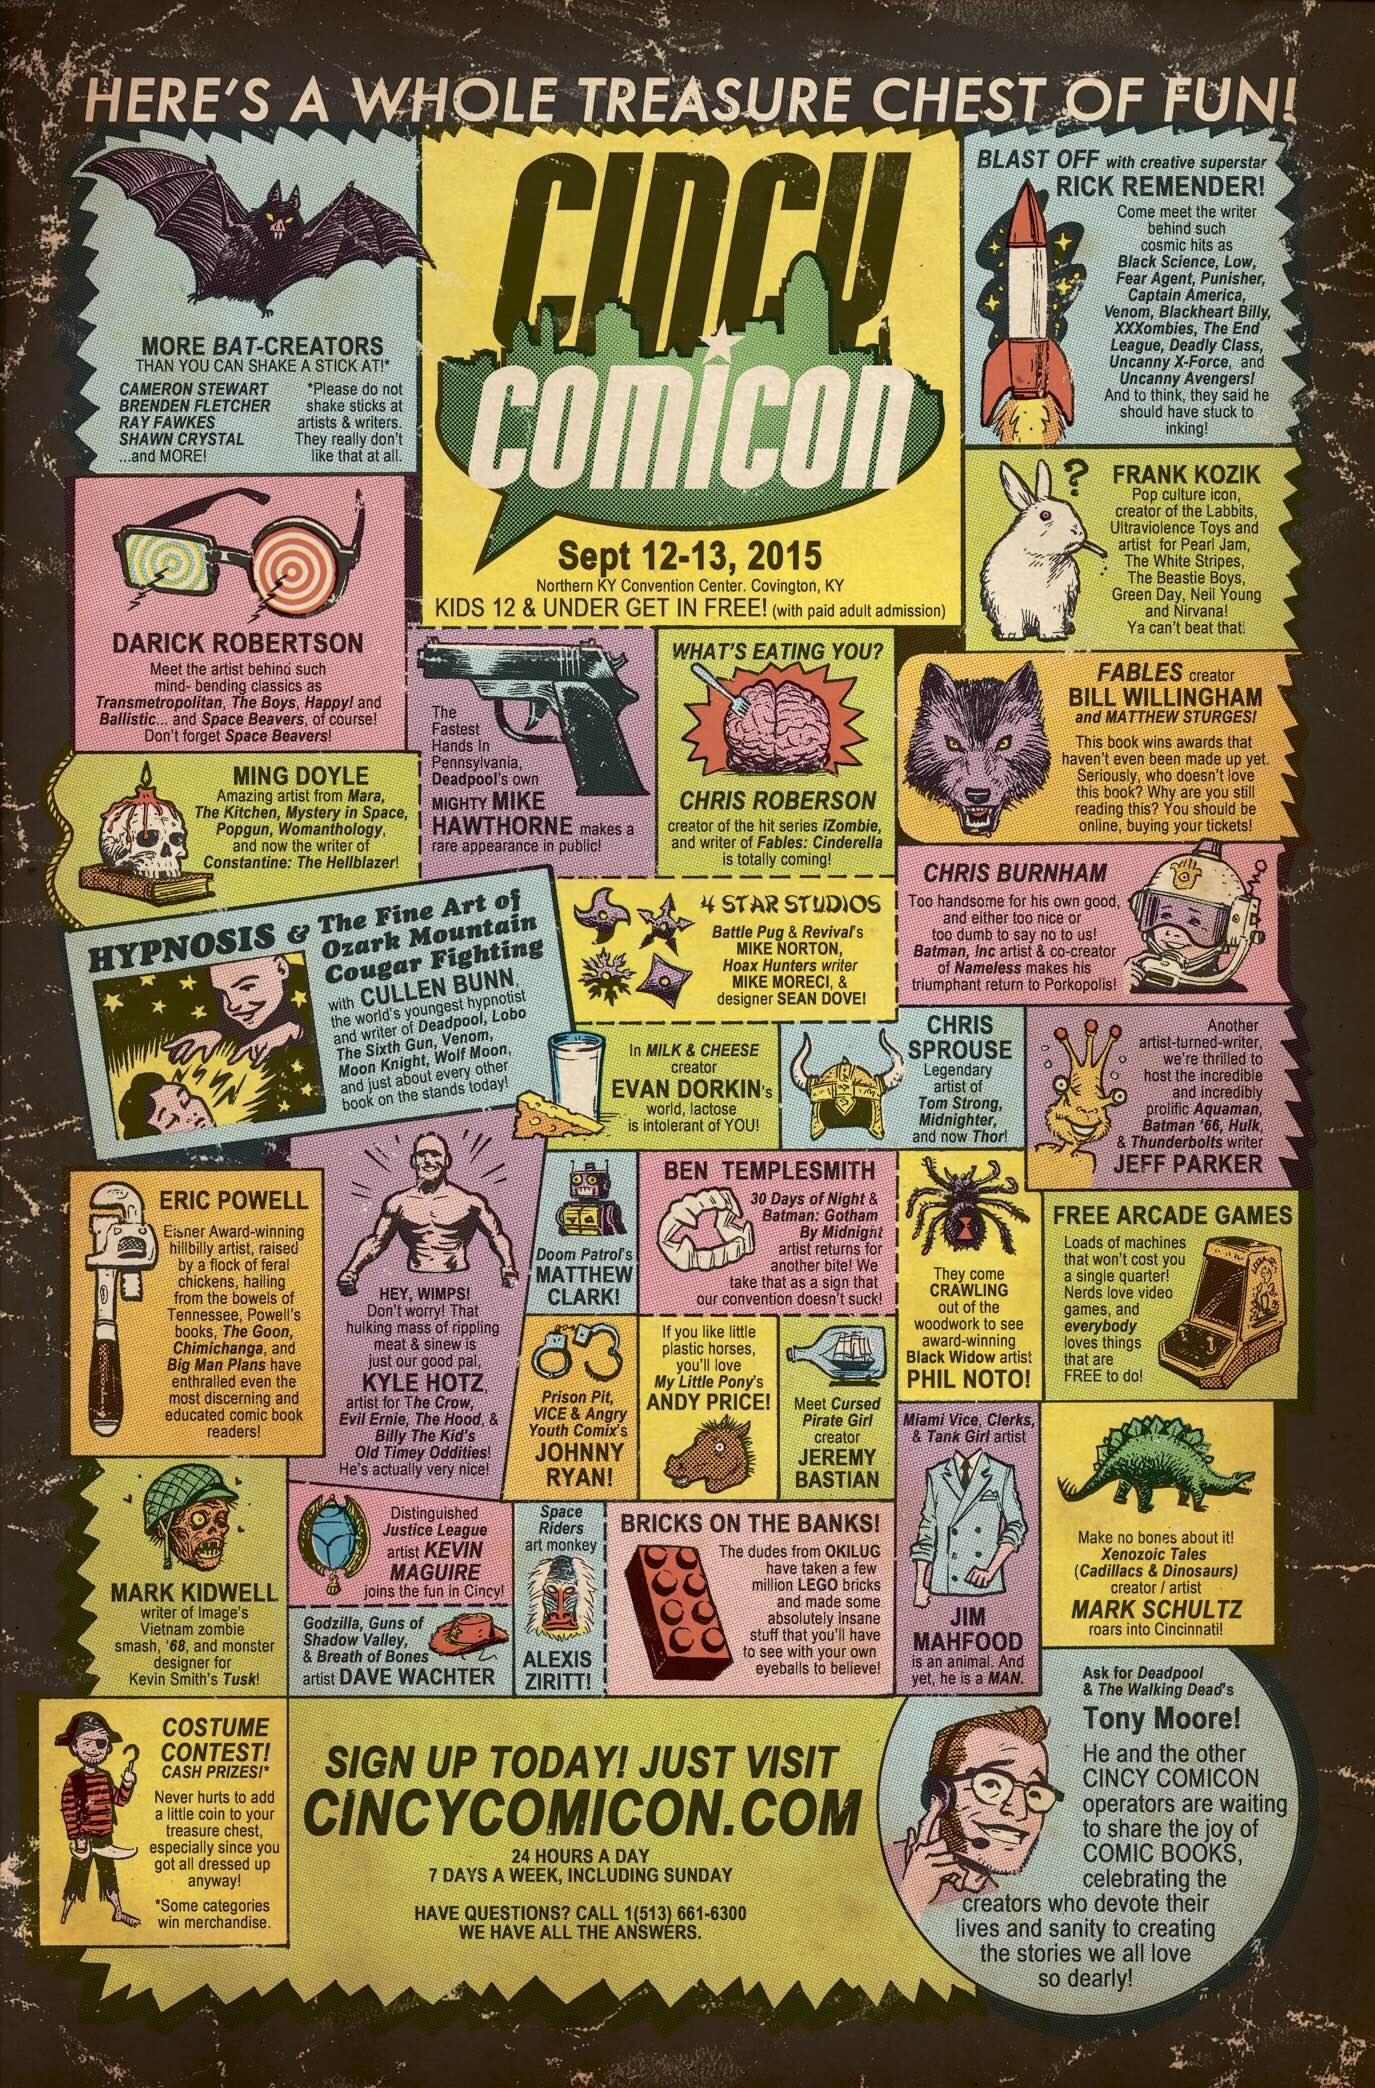 This Poster For The Cincy Comicon Pays Homage To Old Comic Book Ads